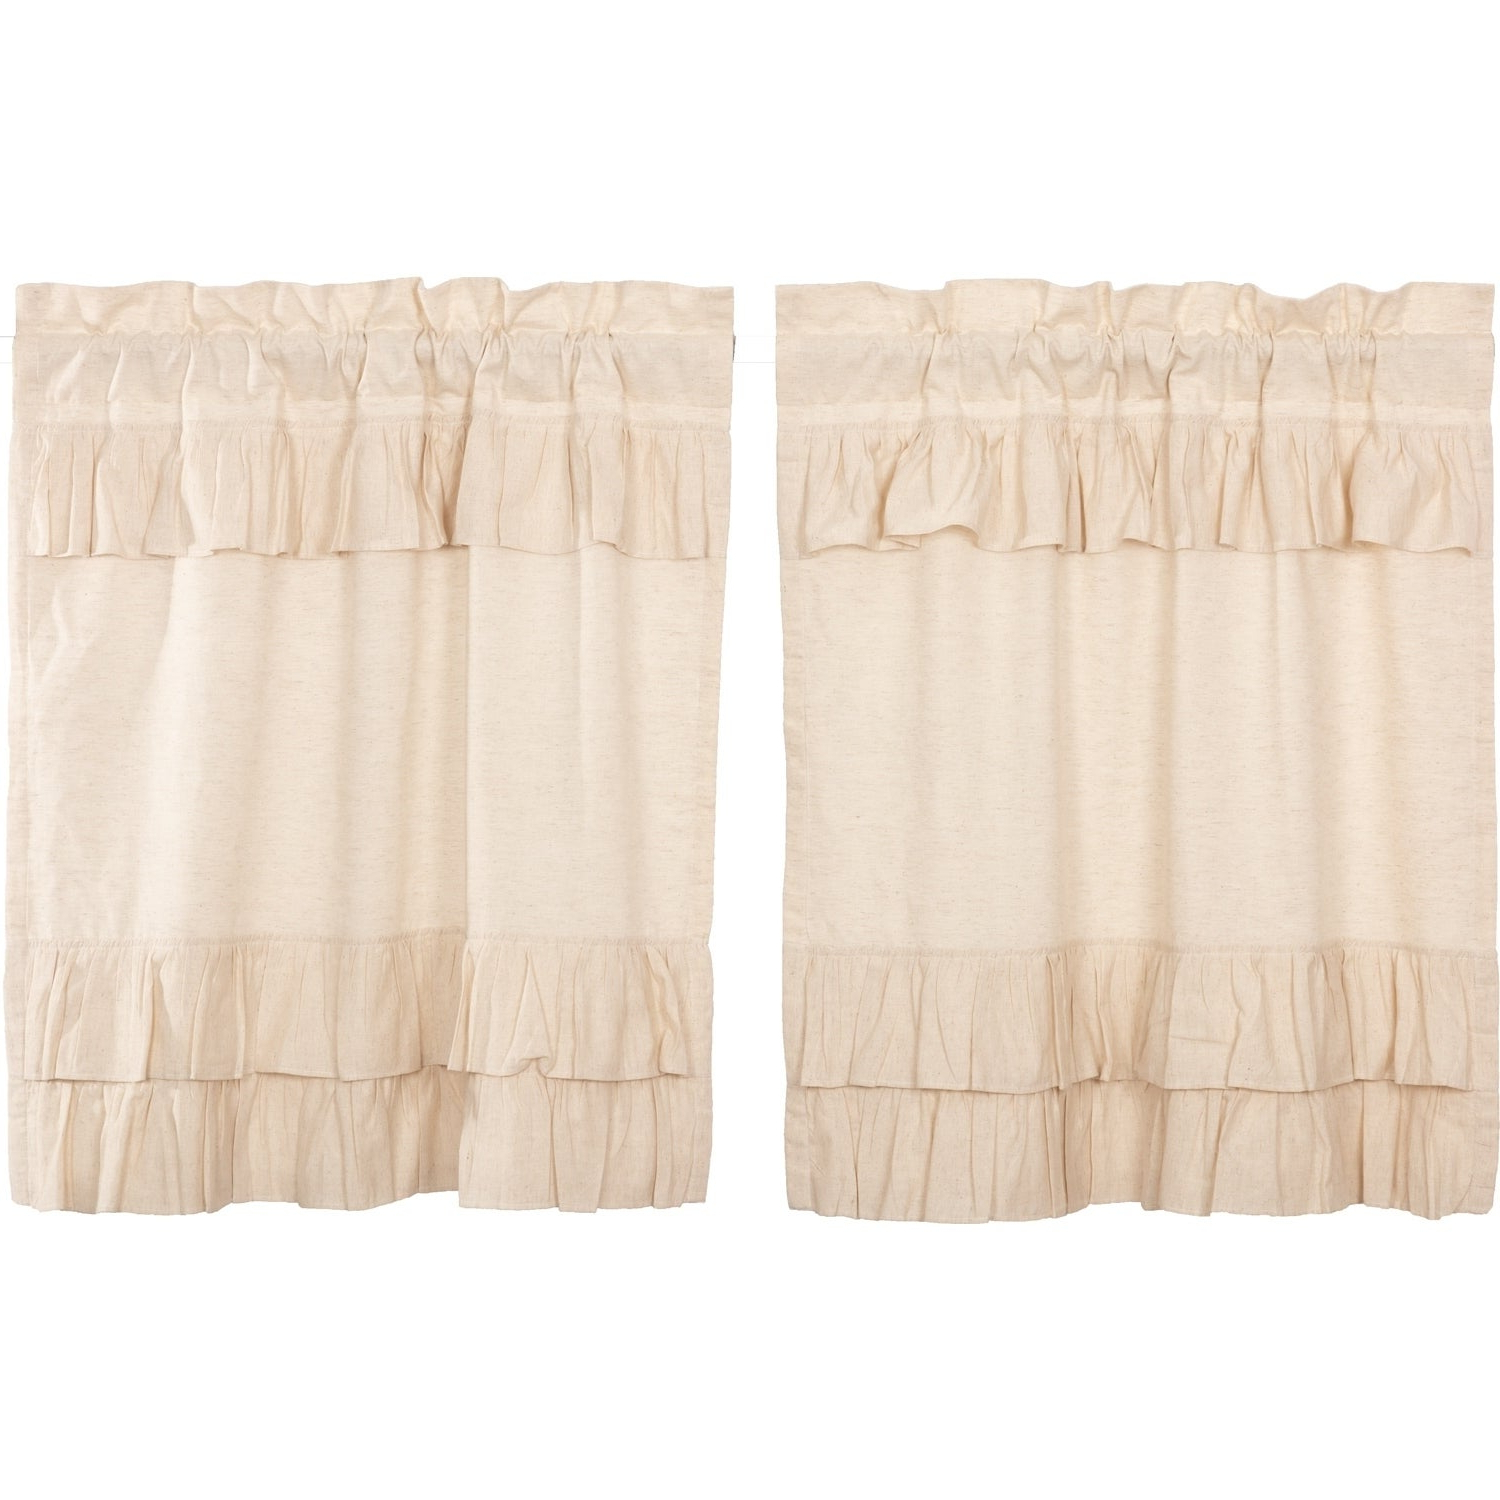 Popular Farmhouse Kitchen Curtains Vhc Simple Life Flax Tier Pair Rod Pocket Cotton  Linen Blend Solid Color Flax Throughout Simple Life Flax Tier Pairs (View 8 of 20)